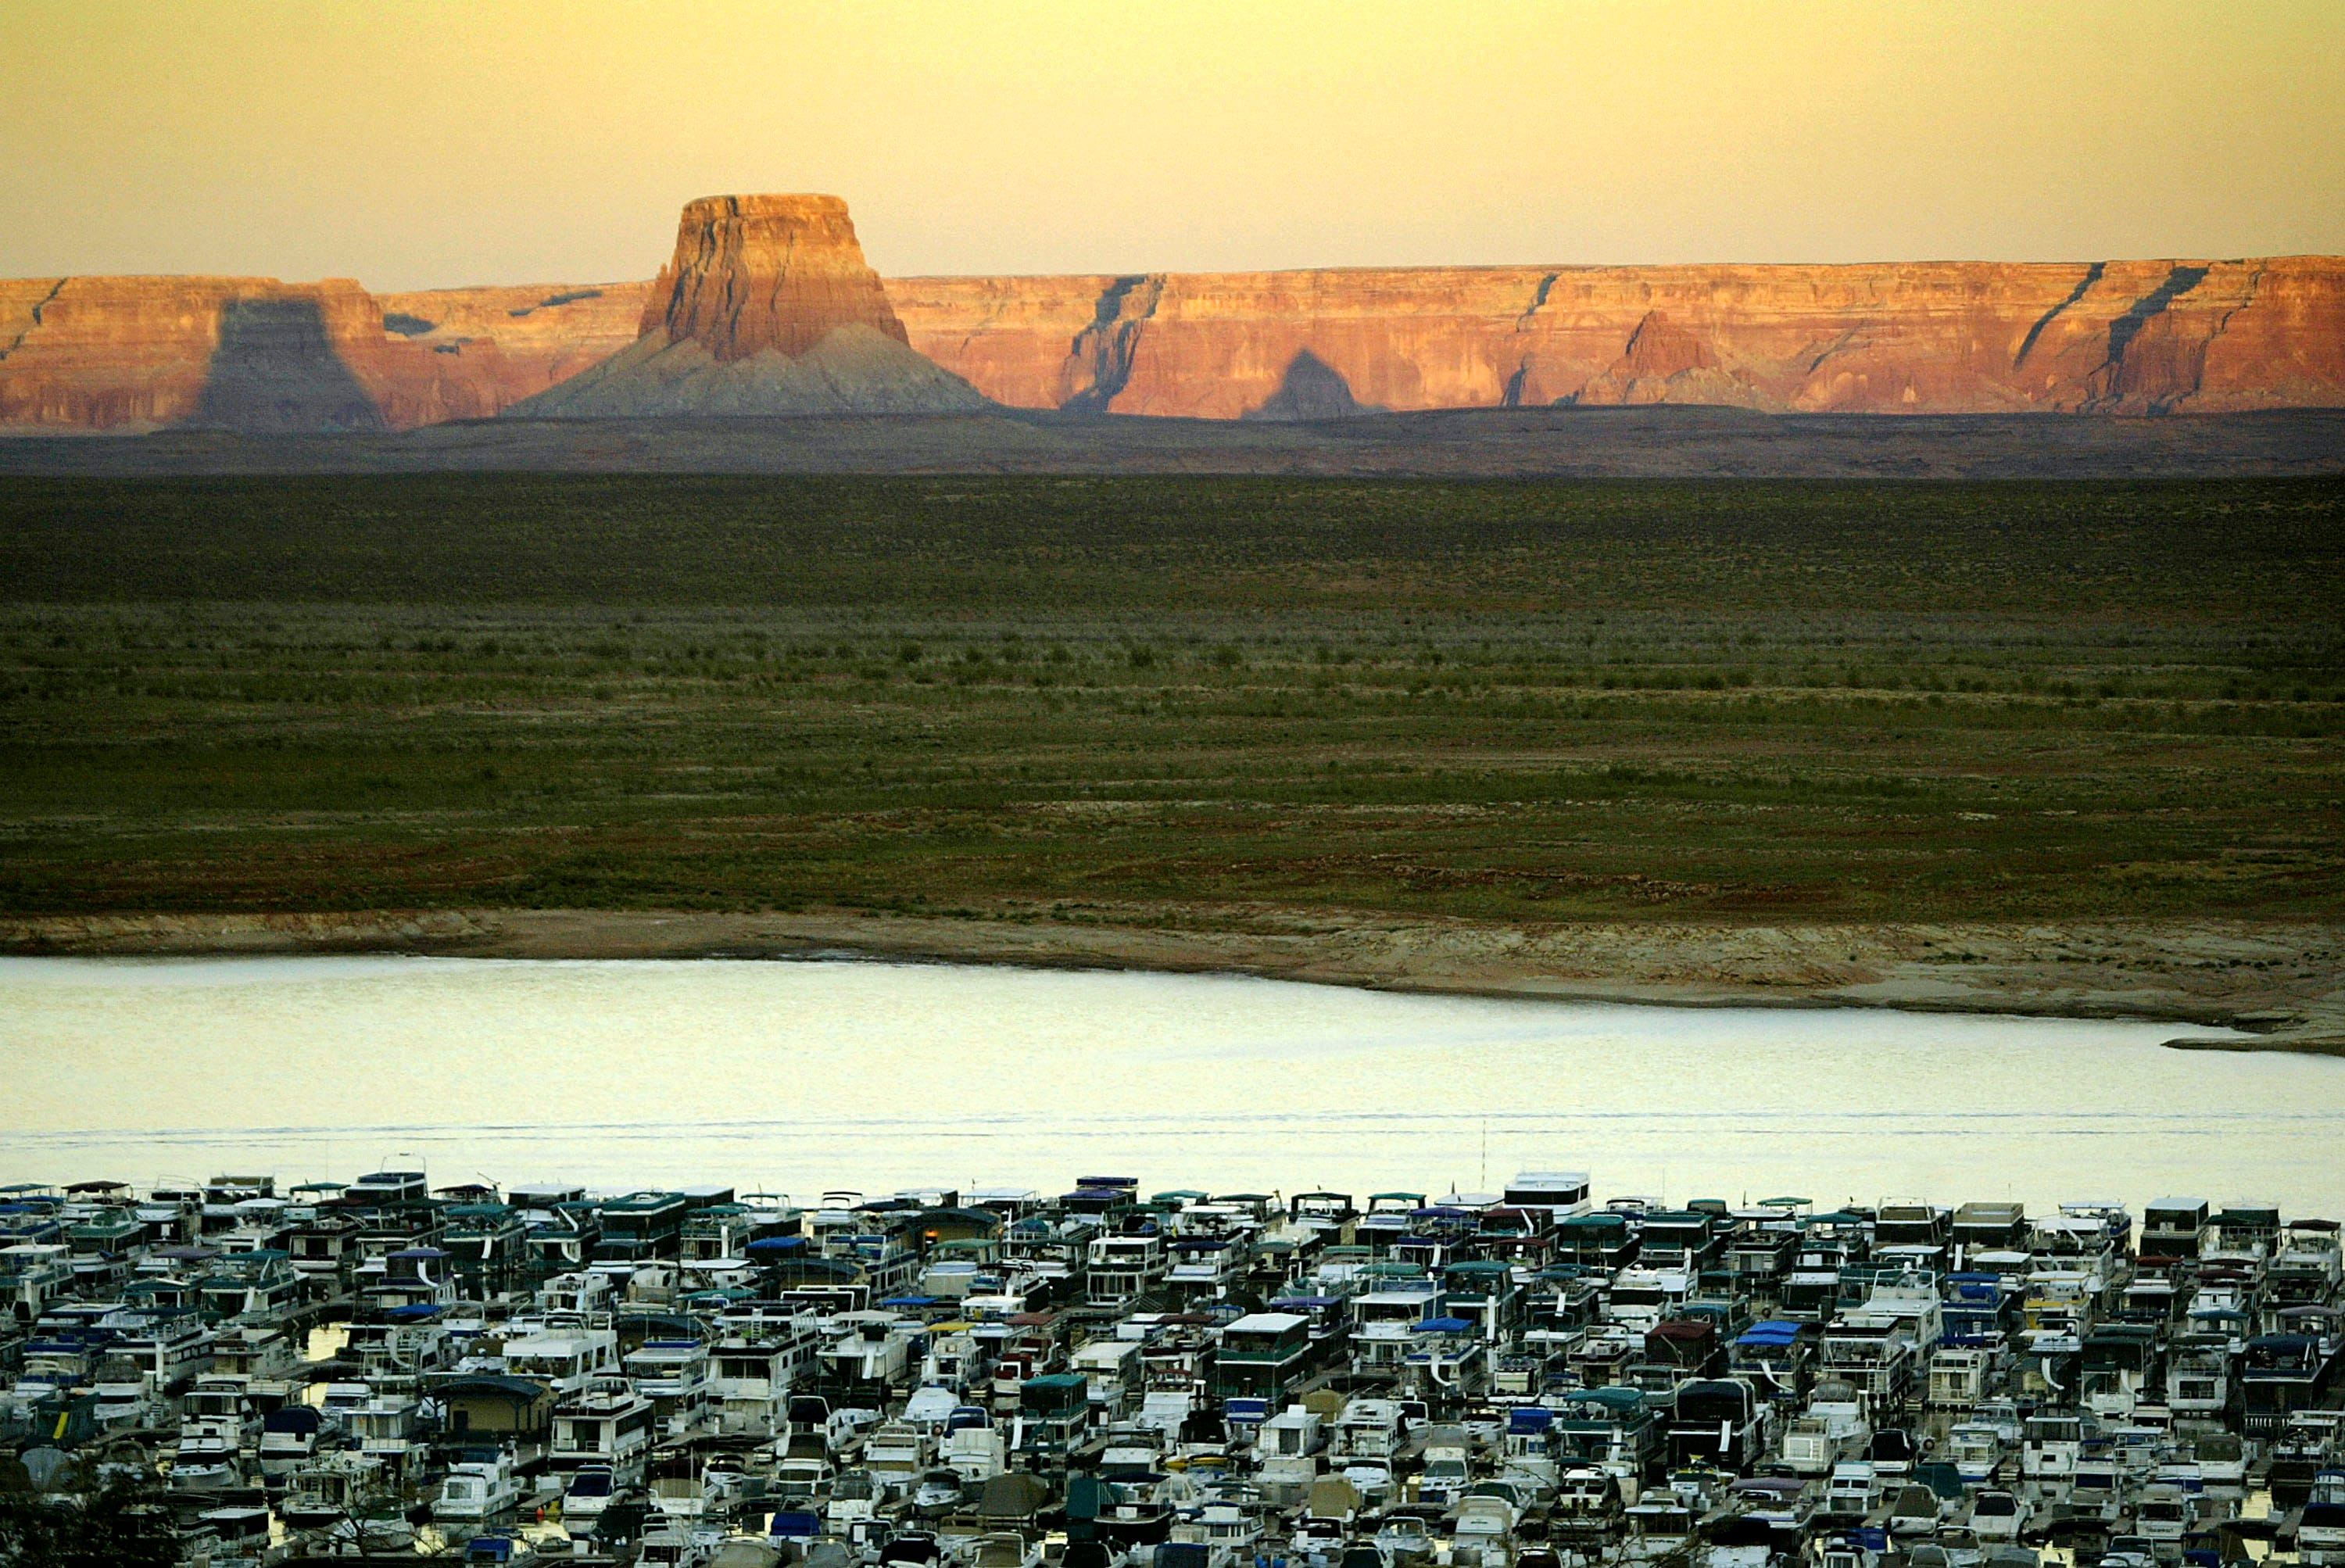 PAGE, AZ - SEPTEMBER 25: Hundreds of boats are docked at Wahweap on Lake Powell as the five-year-old Western drought continues on September 25, 2004 near Page, Arizona. The seven states sharing the Colorado River are considering a plan to protect Lake Powell by cutting the amount of water released downstream to Lake Mead, the primary water supply for Las Vegas. The drought has left the two massive reservoirs that catch the Colorado River less than half full, exposing long-submerged landscapes to direct sunlight for the first time in decades and officials fear that the levels will fall too low to turn the electric turbines that produce electricity. The river provides water for 25 million people, millions of acres of farmland, and an assortment of endangered and other animals. It could reportedly take a 10-year run of average rain and snow to refill the reservoirs.           (Photo by David McNew/Getty Images) ORG XMIT: 51332881